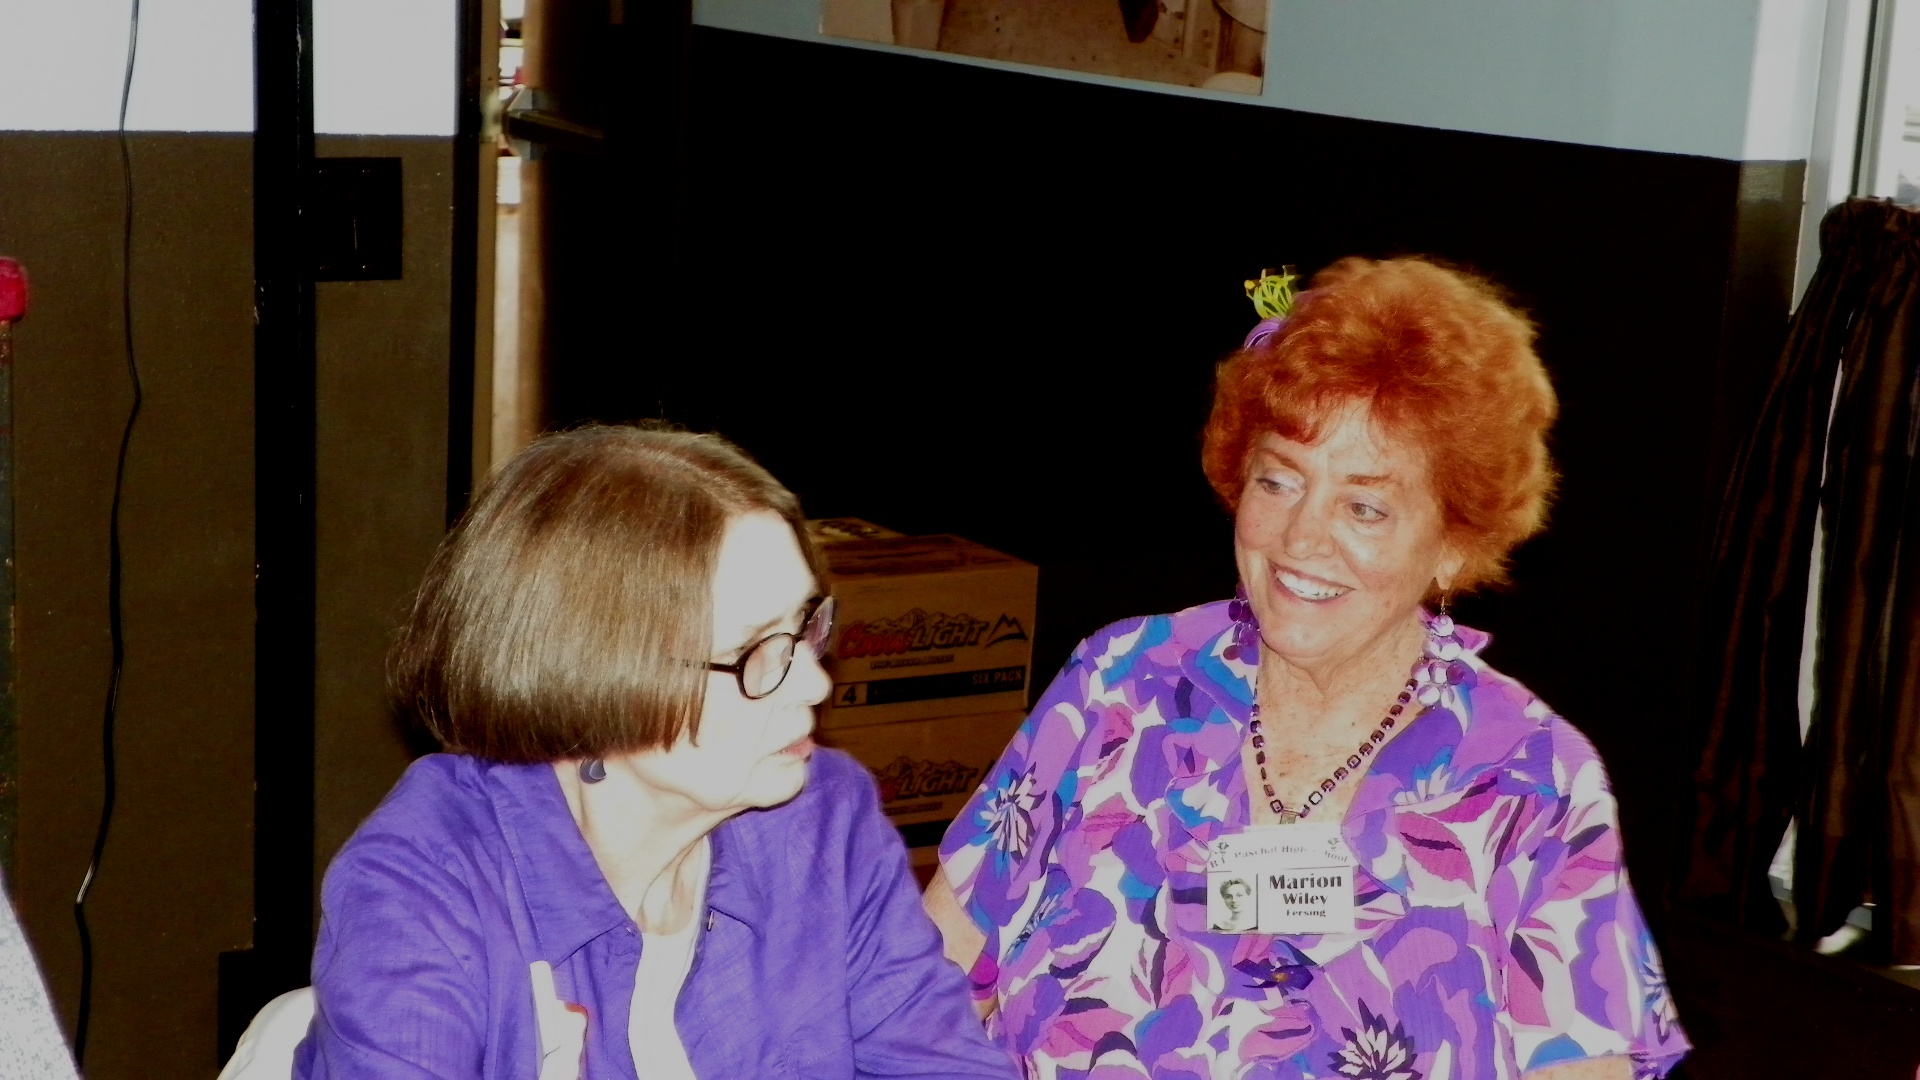 Sue Coffman and Marion Wiley Fersing